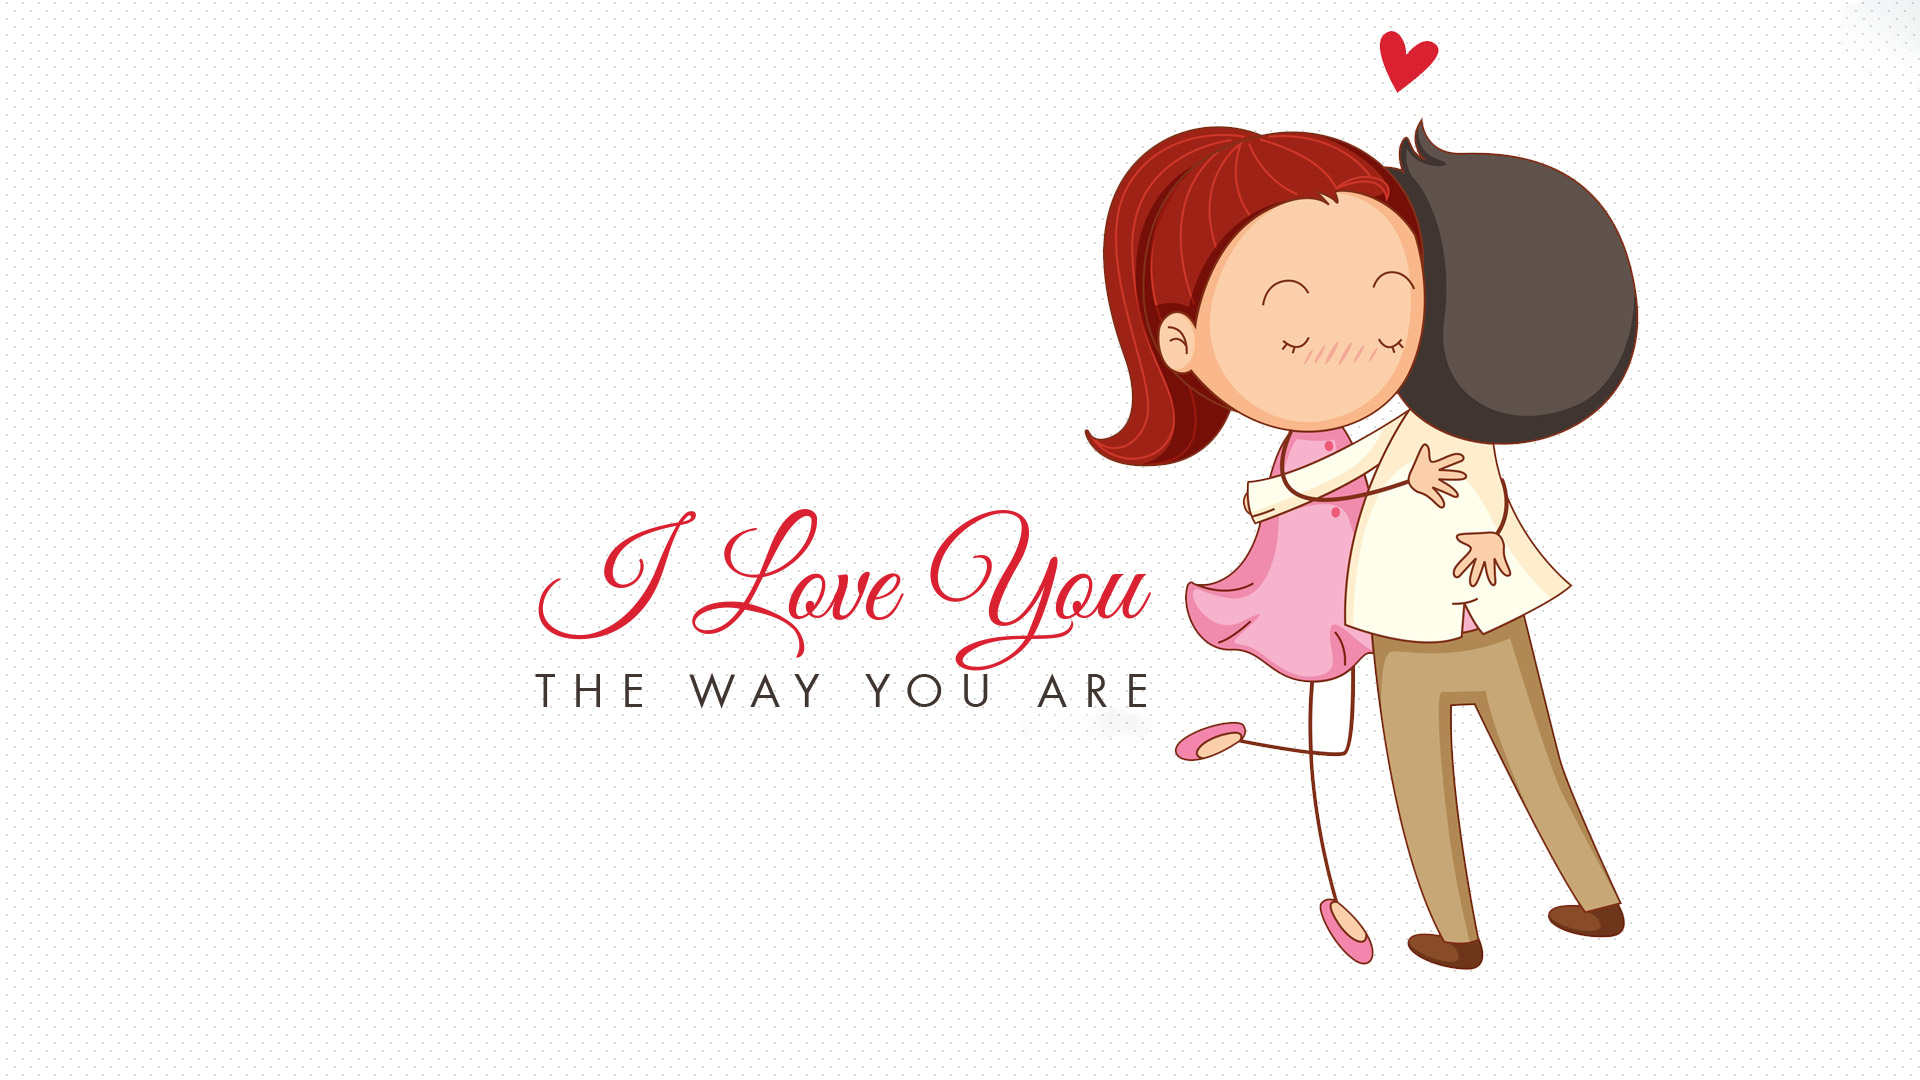 Romantic Love cartoon Wallpaper : Top 150+ Beautiful cute Romantic Love couple HD Wallpaper